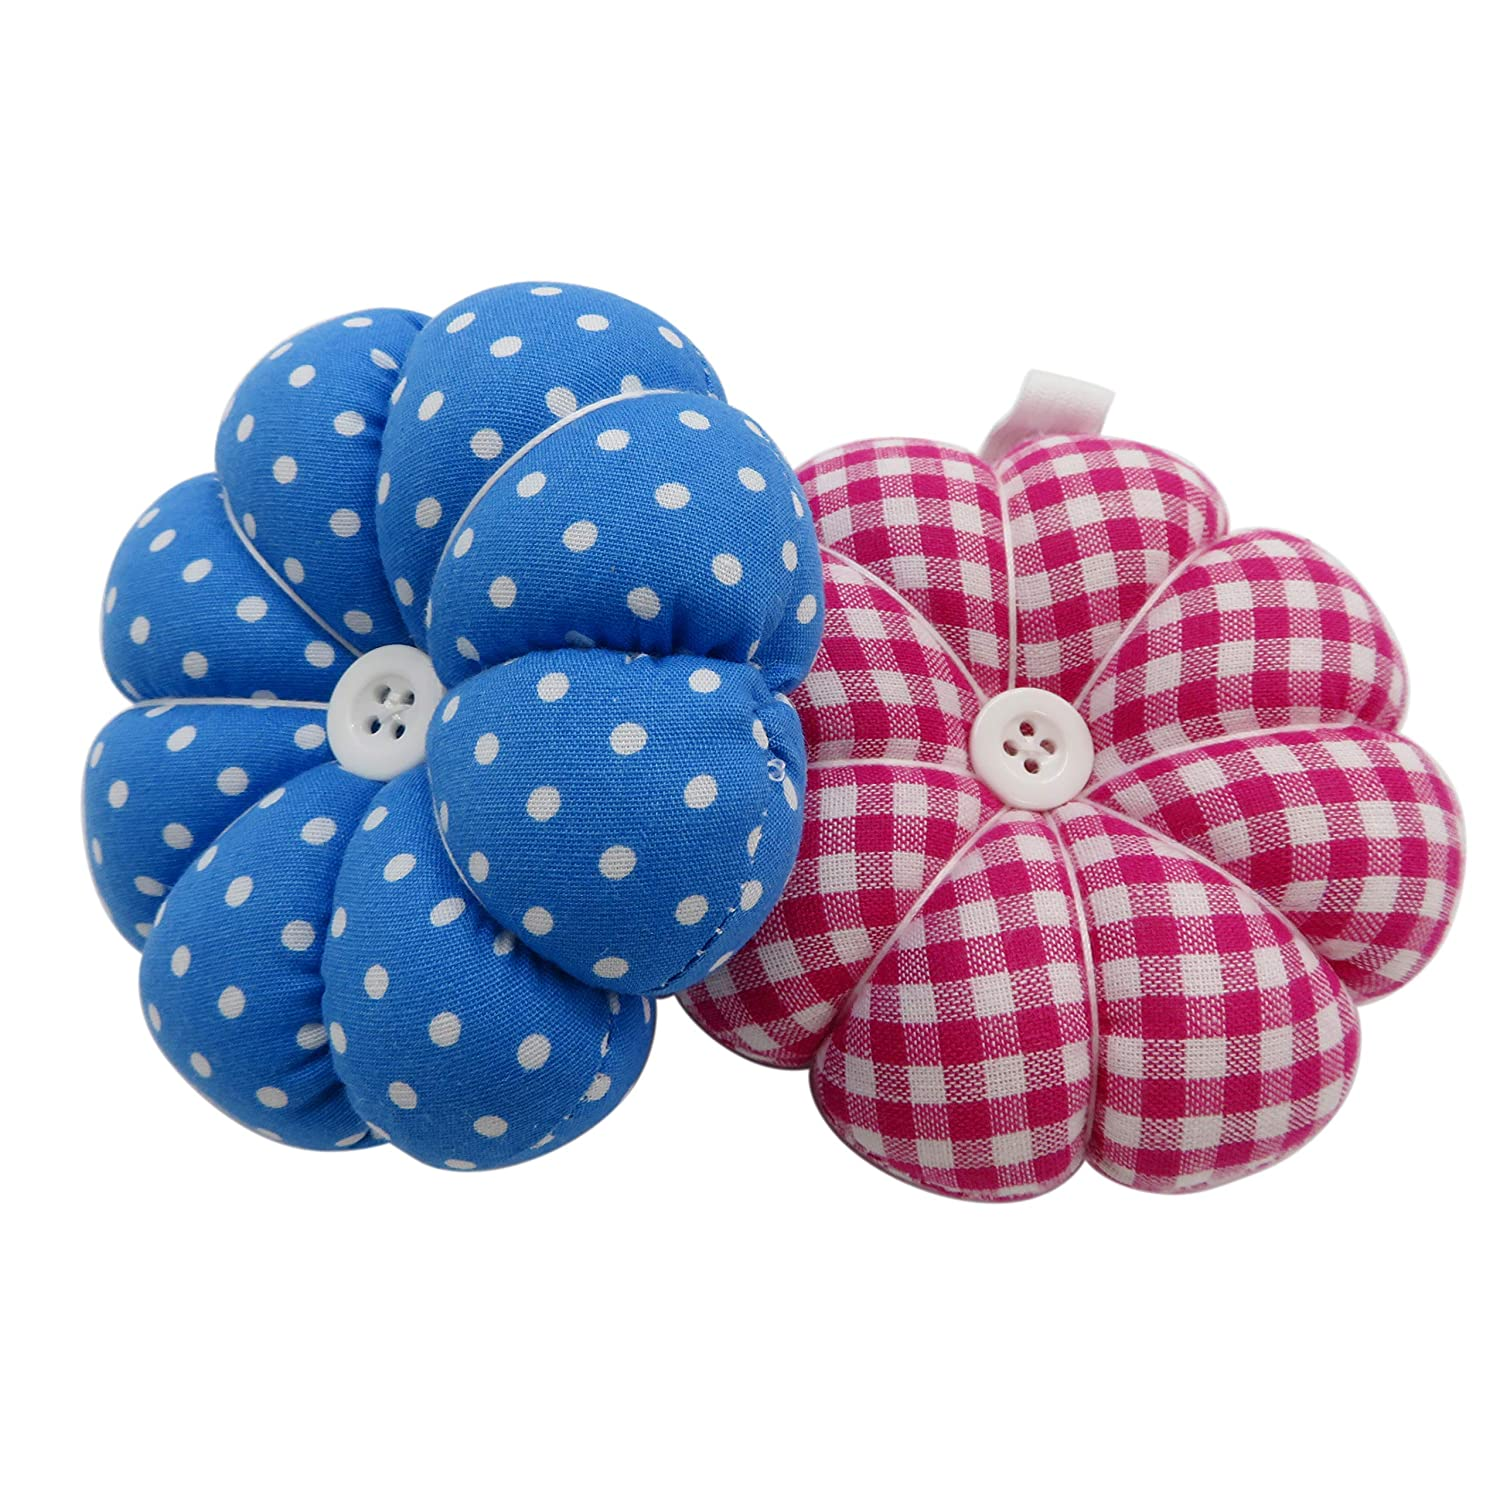 DODOGA Wrist Pin Cushions Pumpkin Shape Wrist Wearable Needle Pin Cushions Pincushions with Wrist Band for Sewing Work(2pcs)